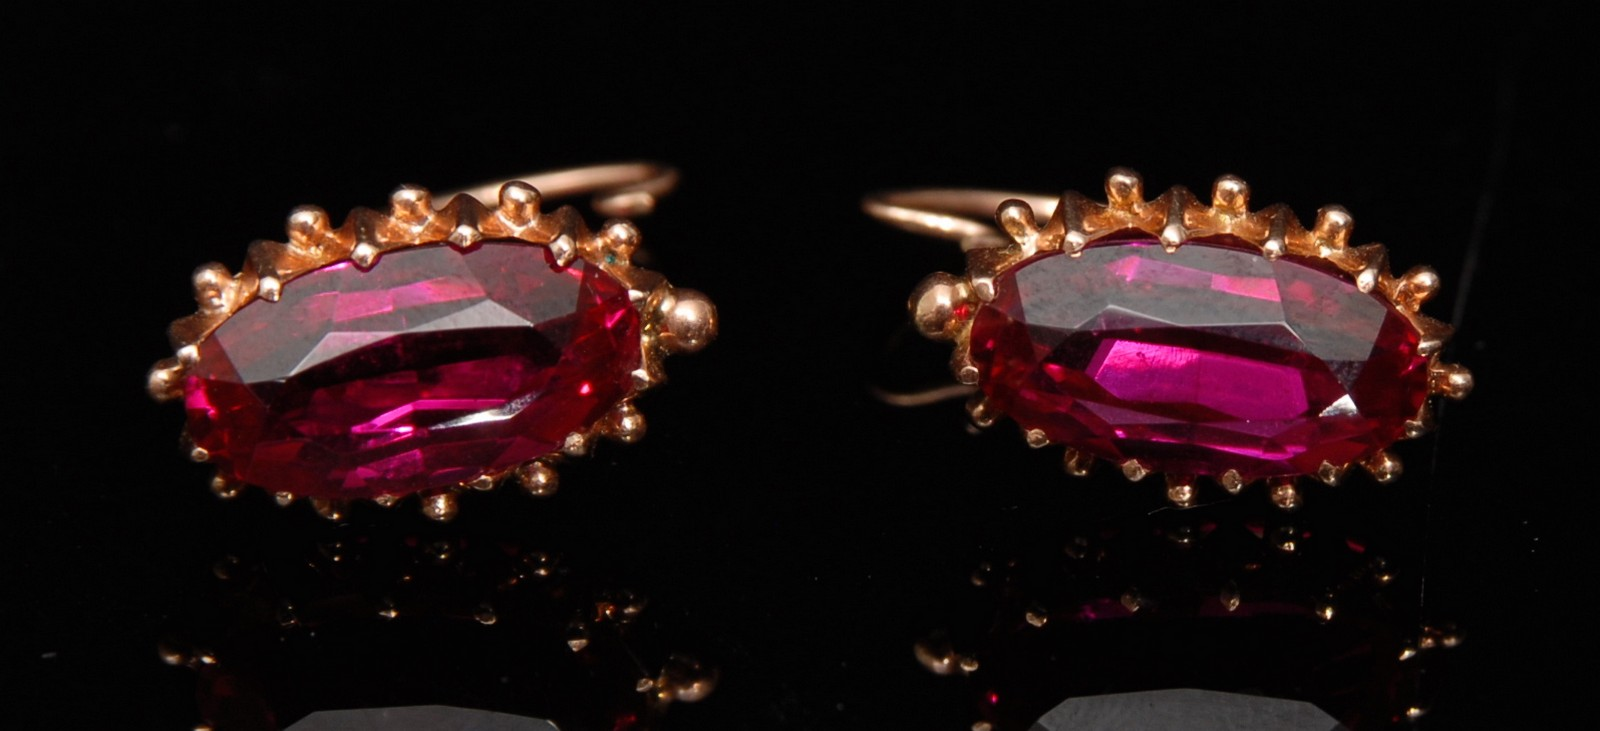 Lot 3194  A Pair Of Russian Vibrant Pink Spinel Earrings, Each With A  Single